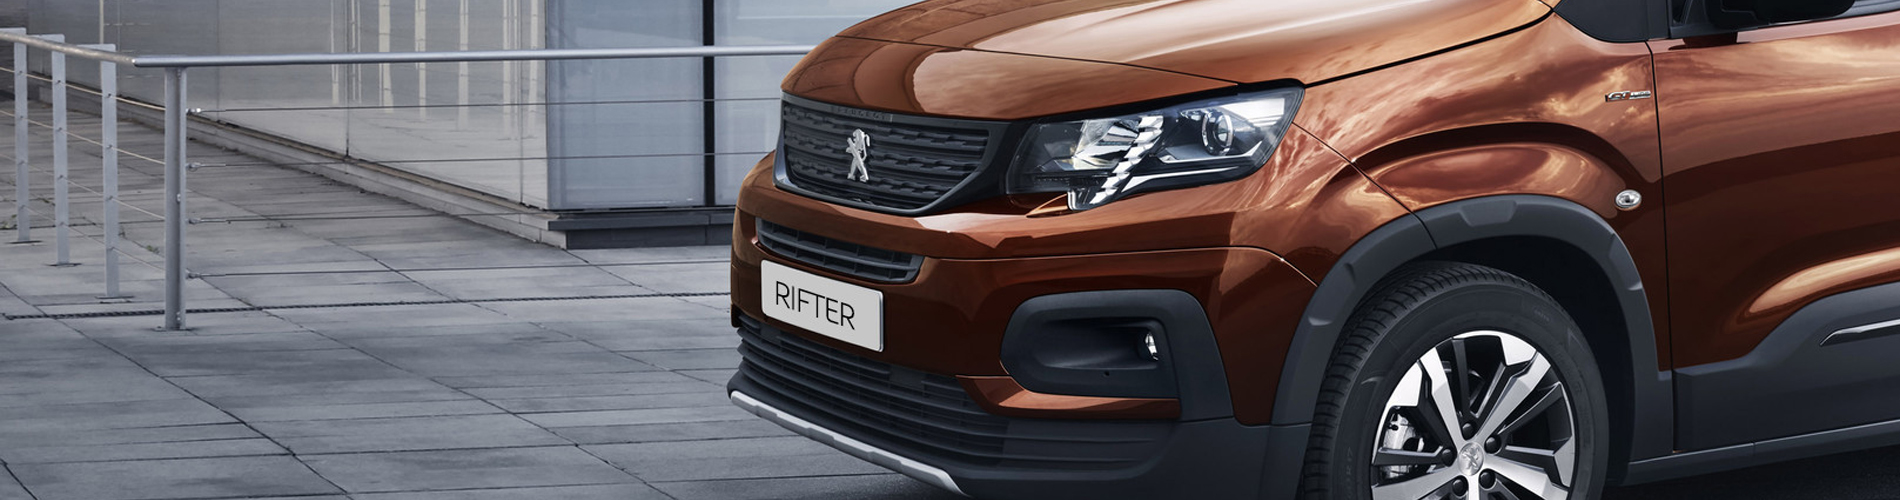 All New Peugeot Rifter